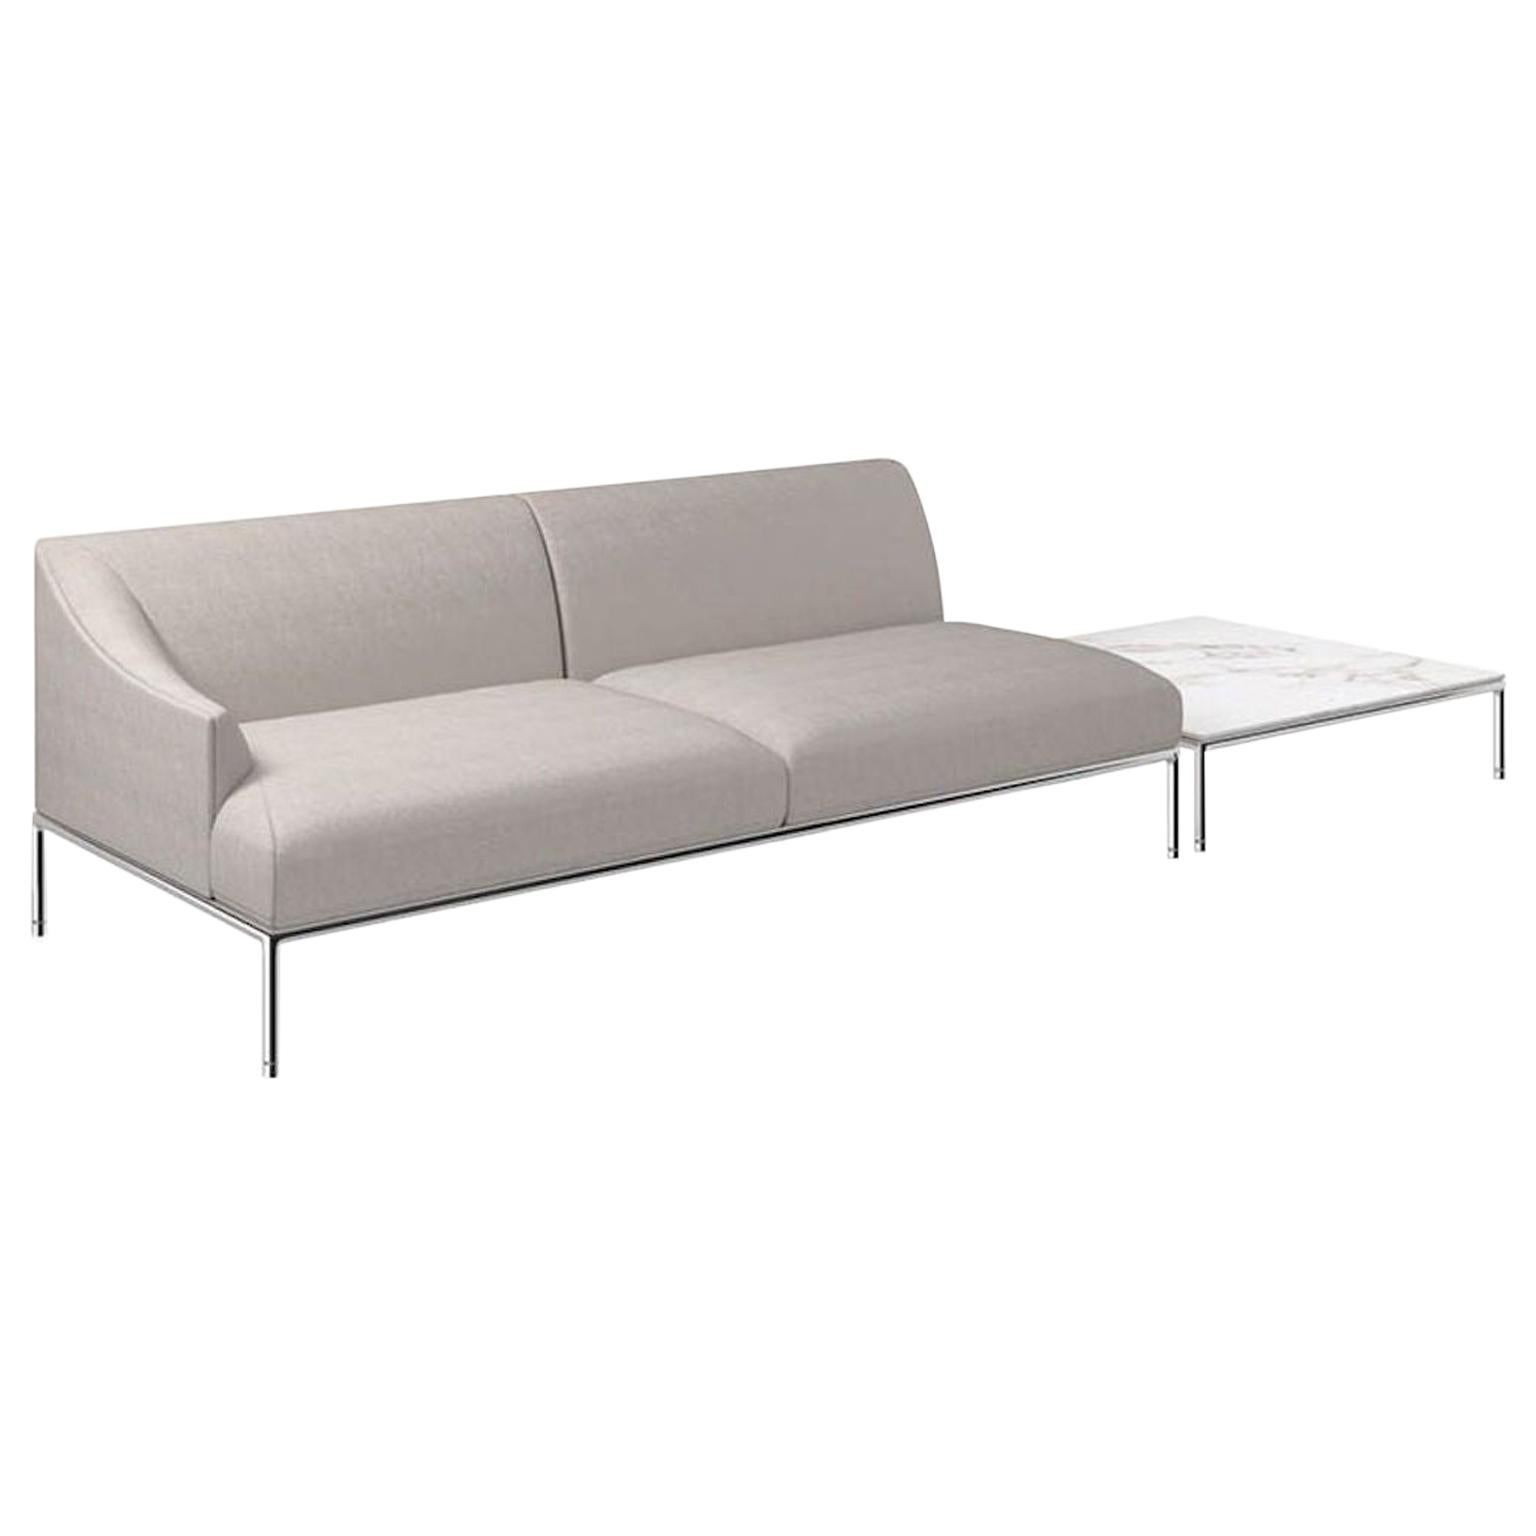 Cappellini High Time Two-Seat Sofa in Fabric or Leather by Christophe Pillet